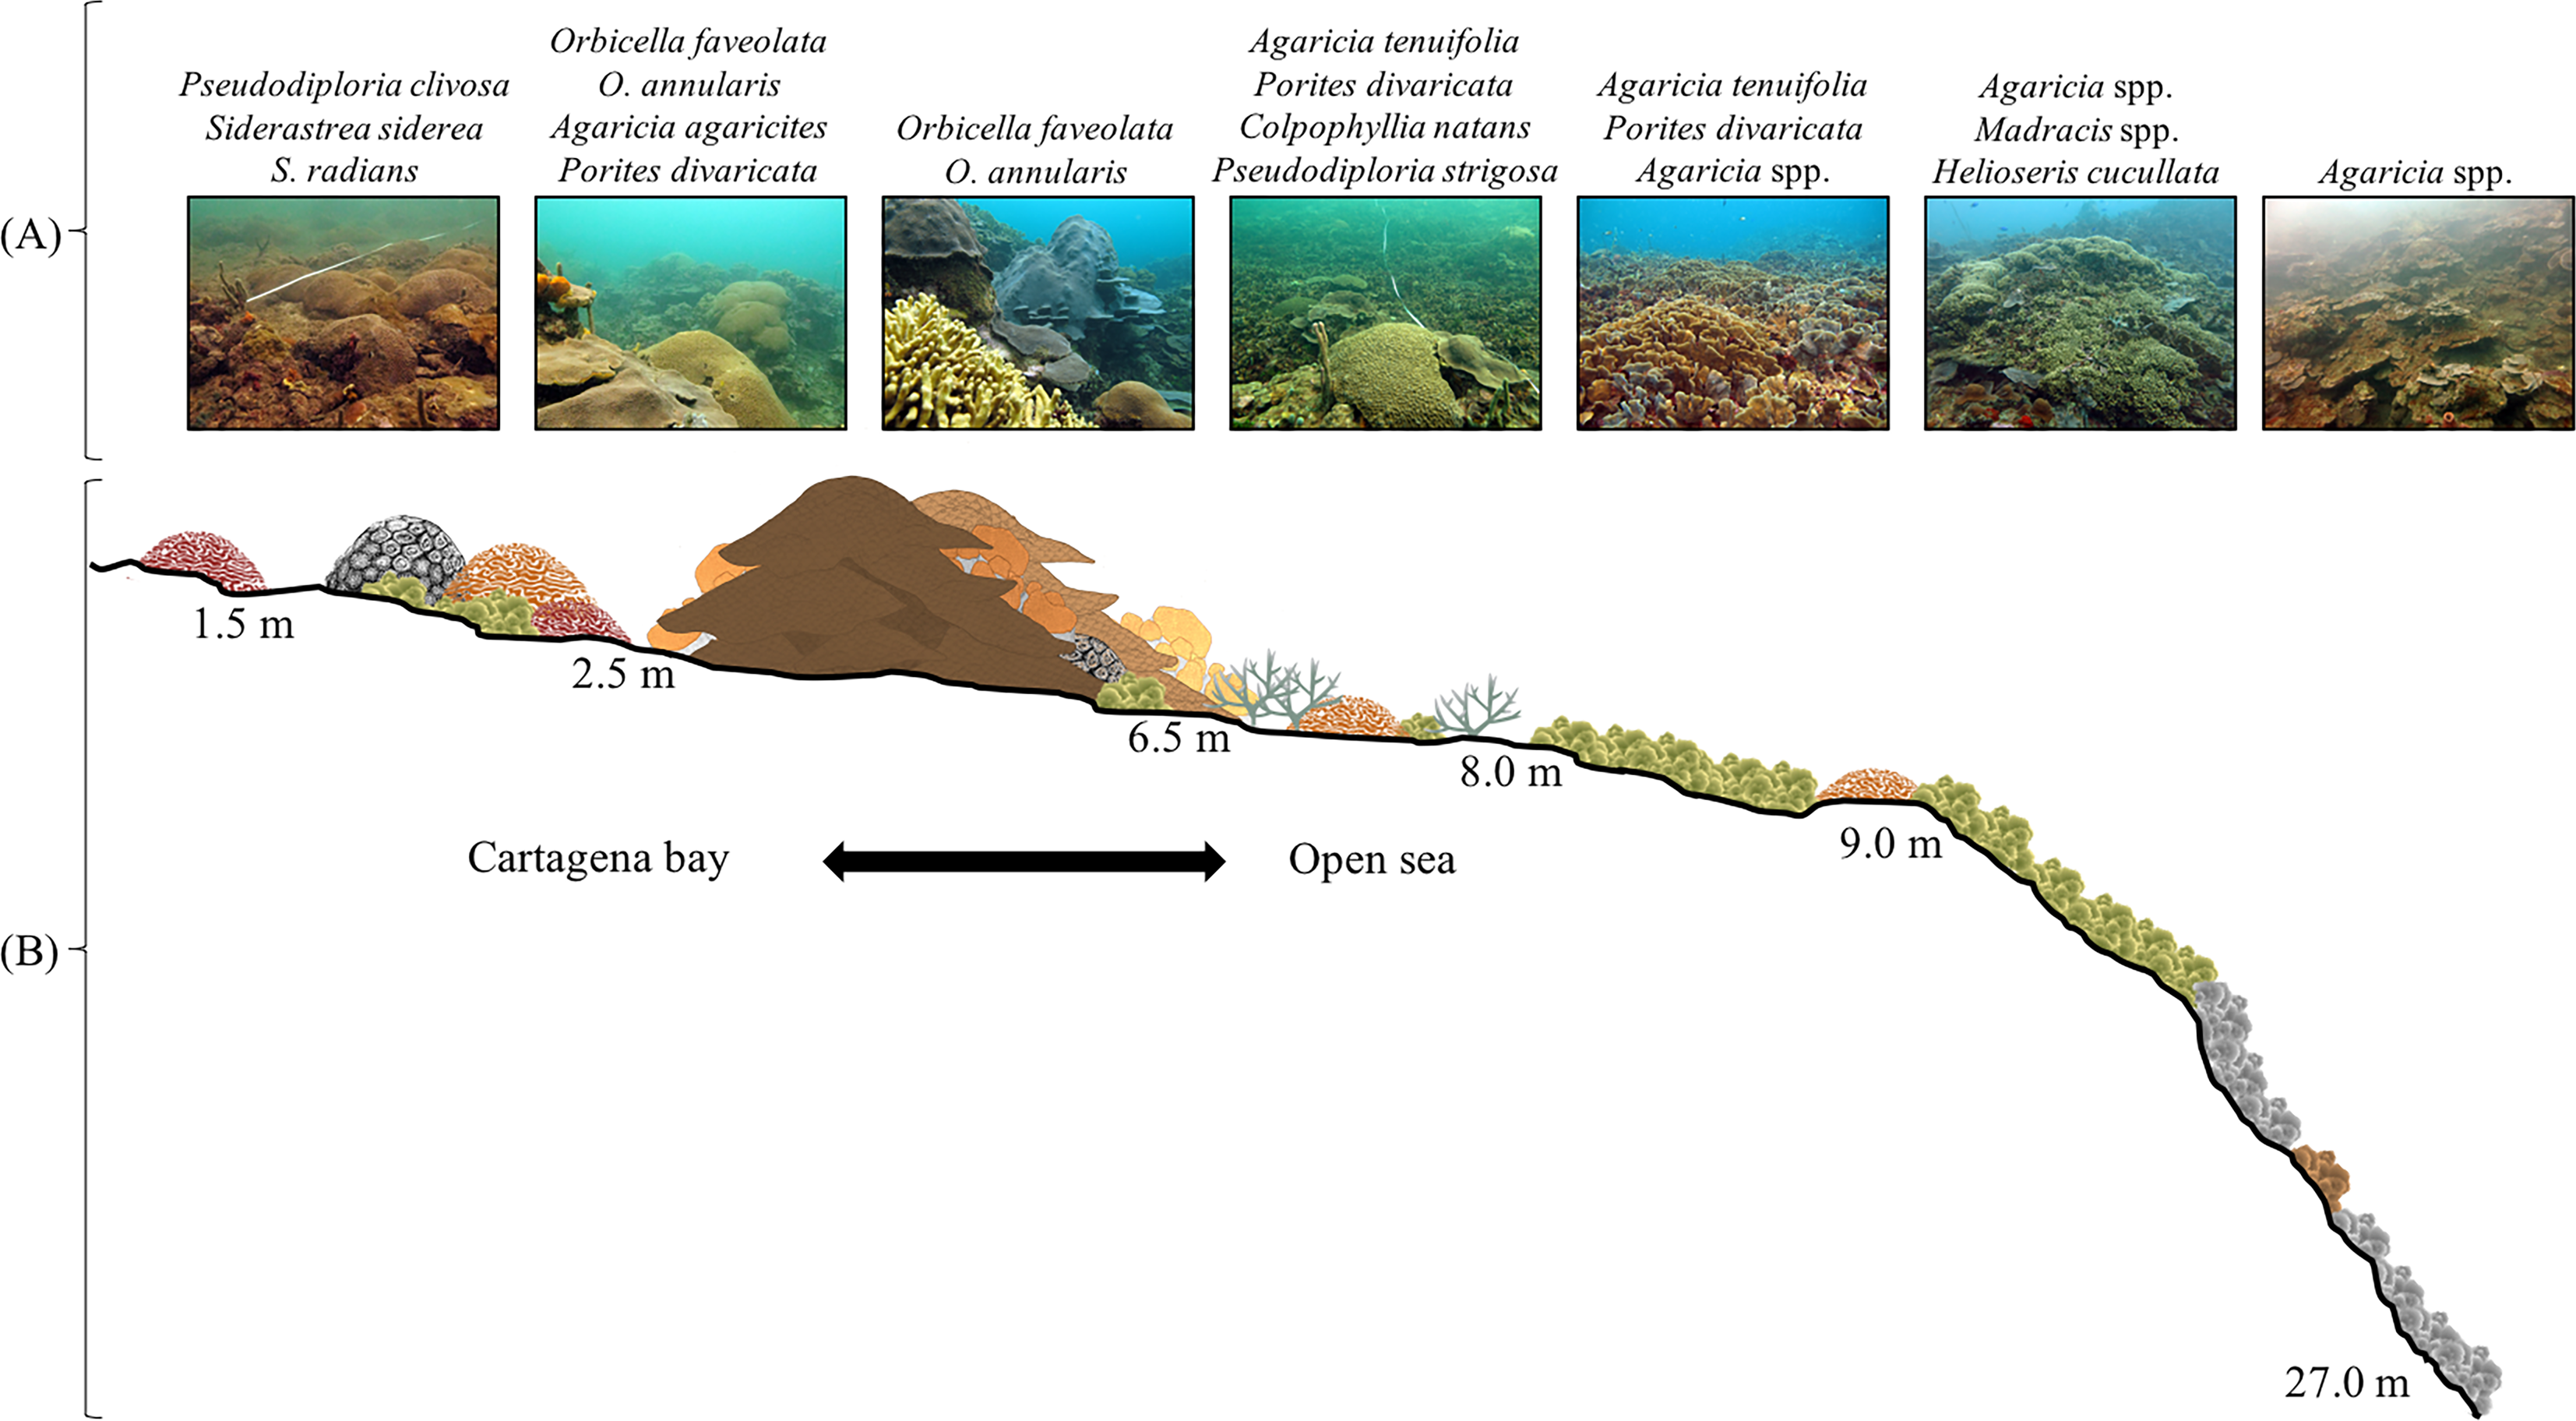 Ask Expert Unraveling Clues >> Unraveling The Structure And Composition Of Varadero Reef An